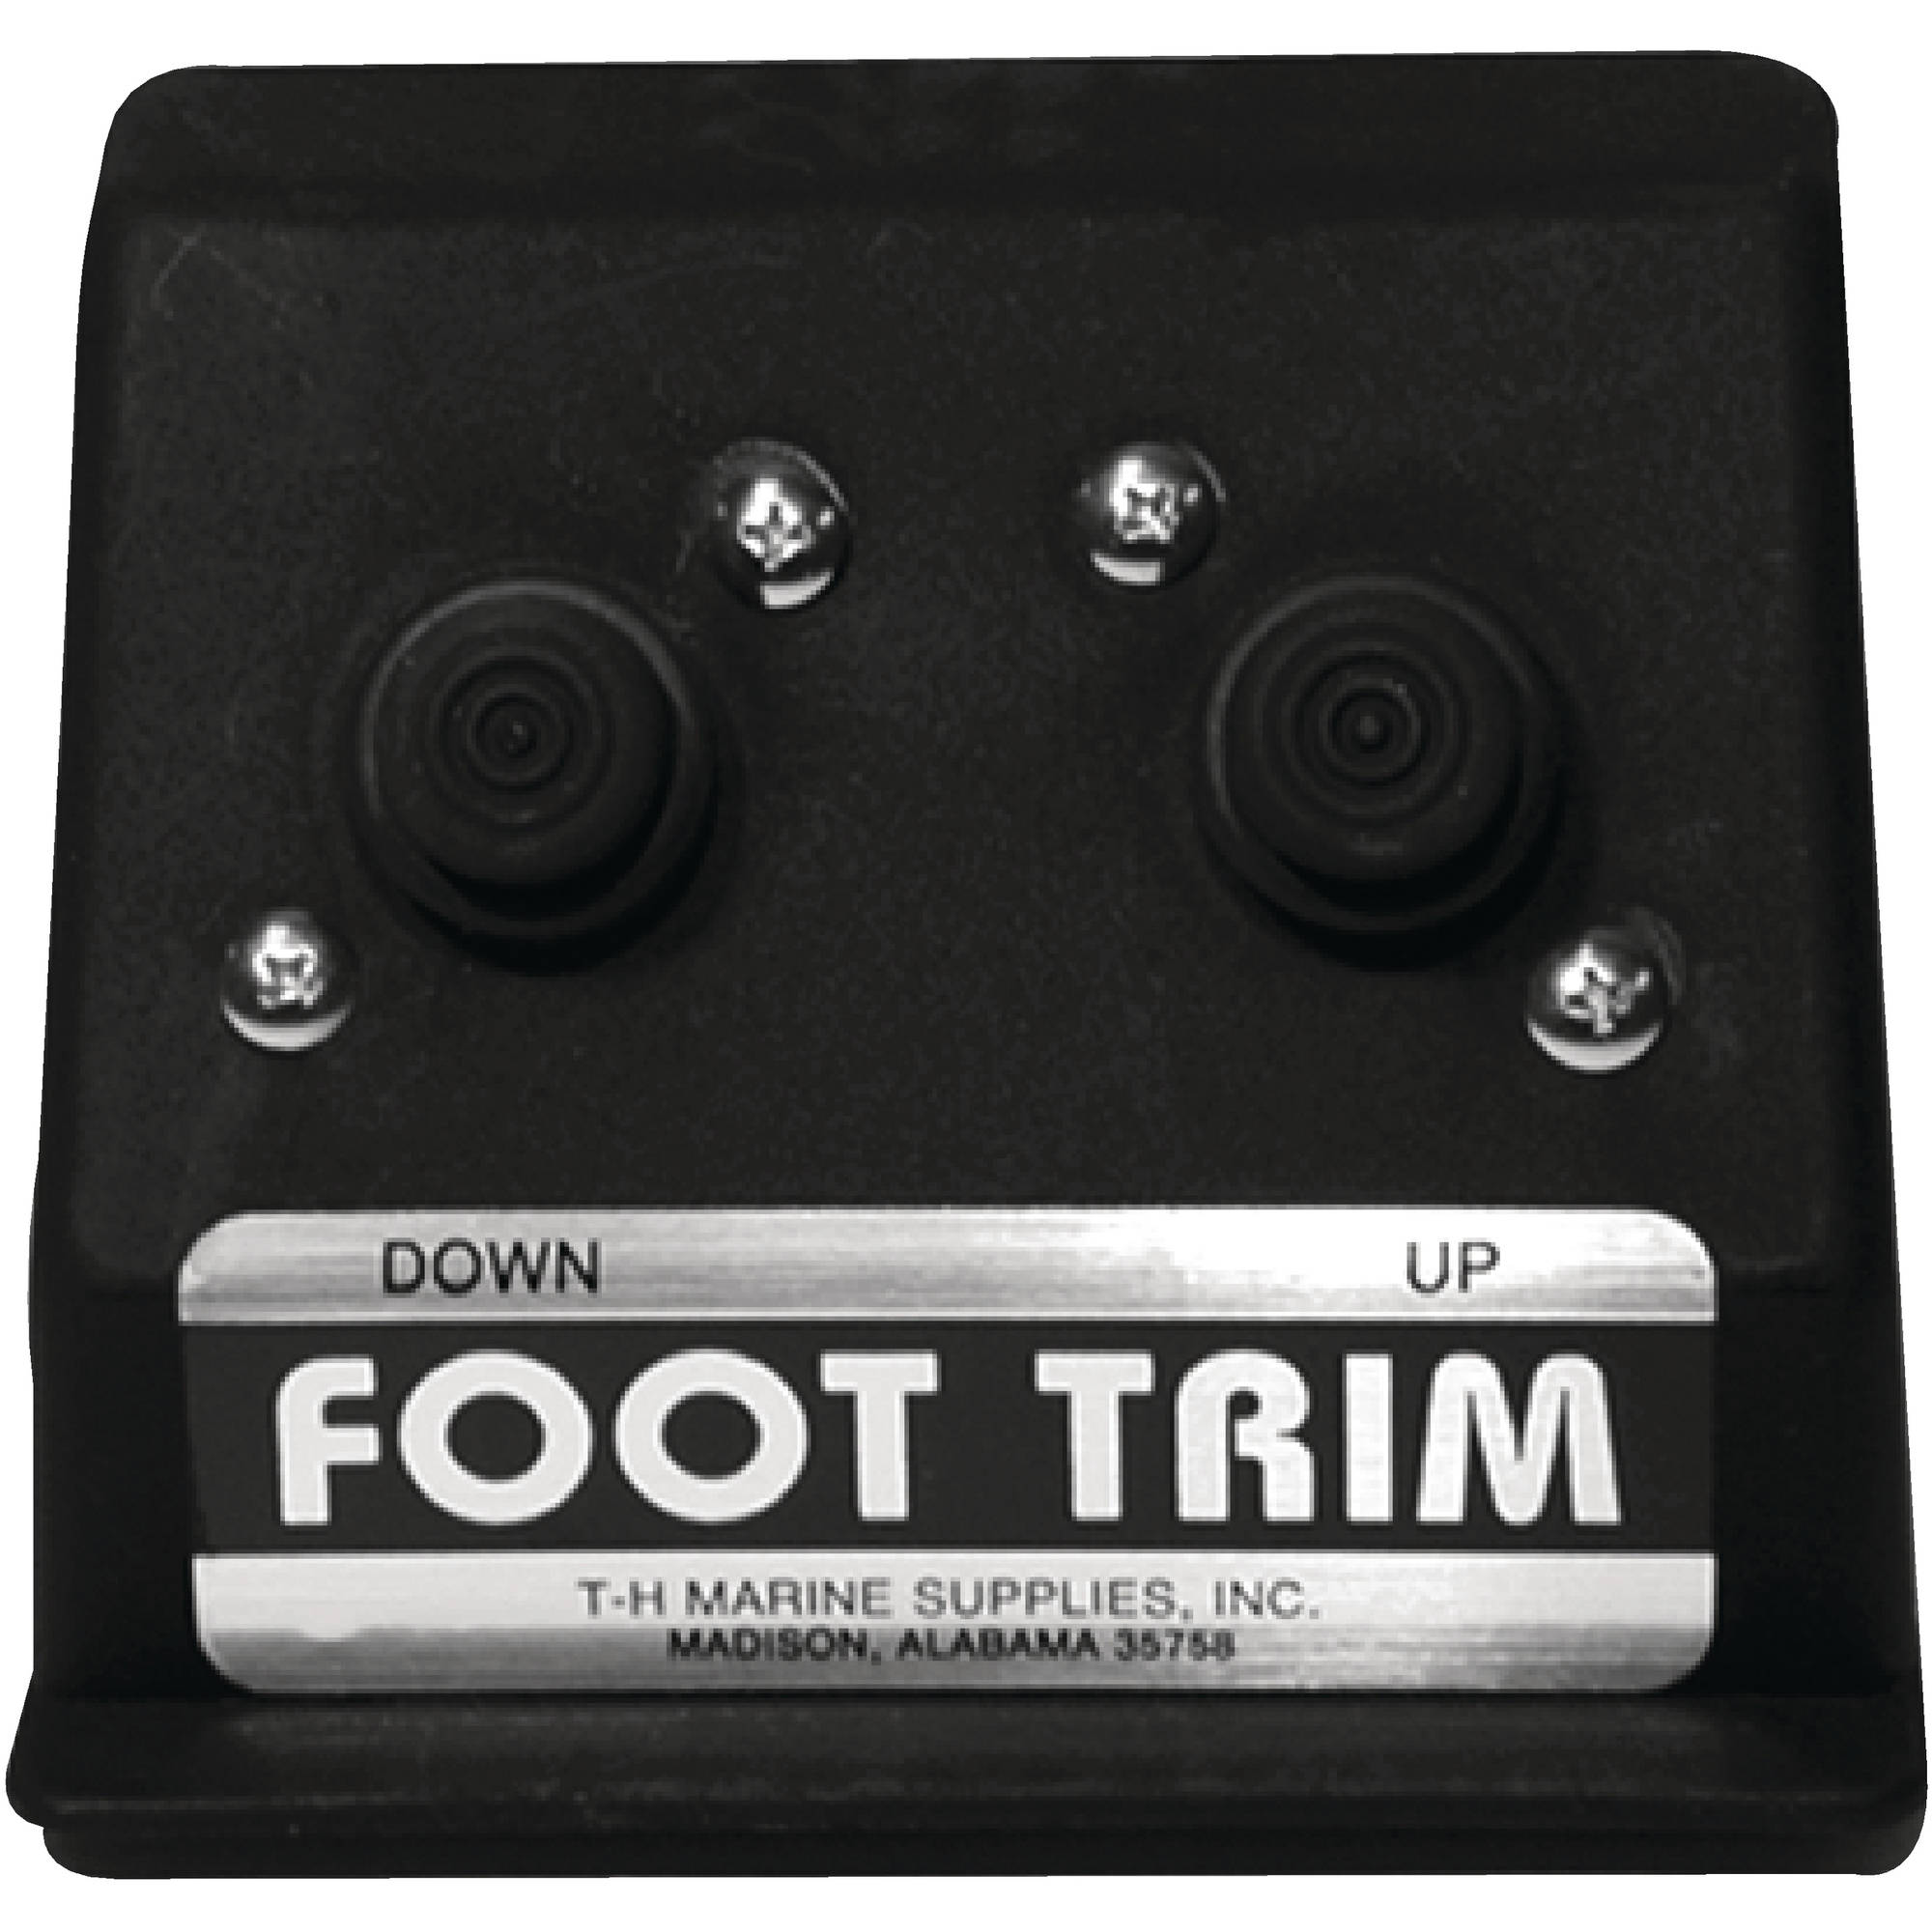 T-H Marine Hot Trim Floor Mounted Trim Control by T-H Marine Supplies